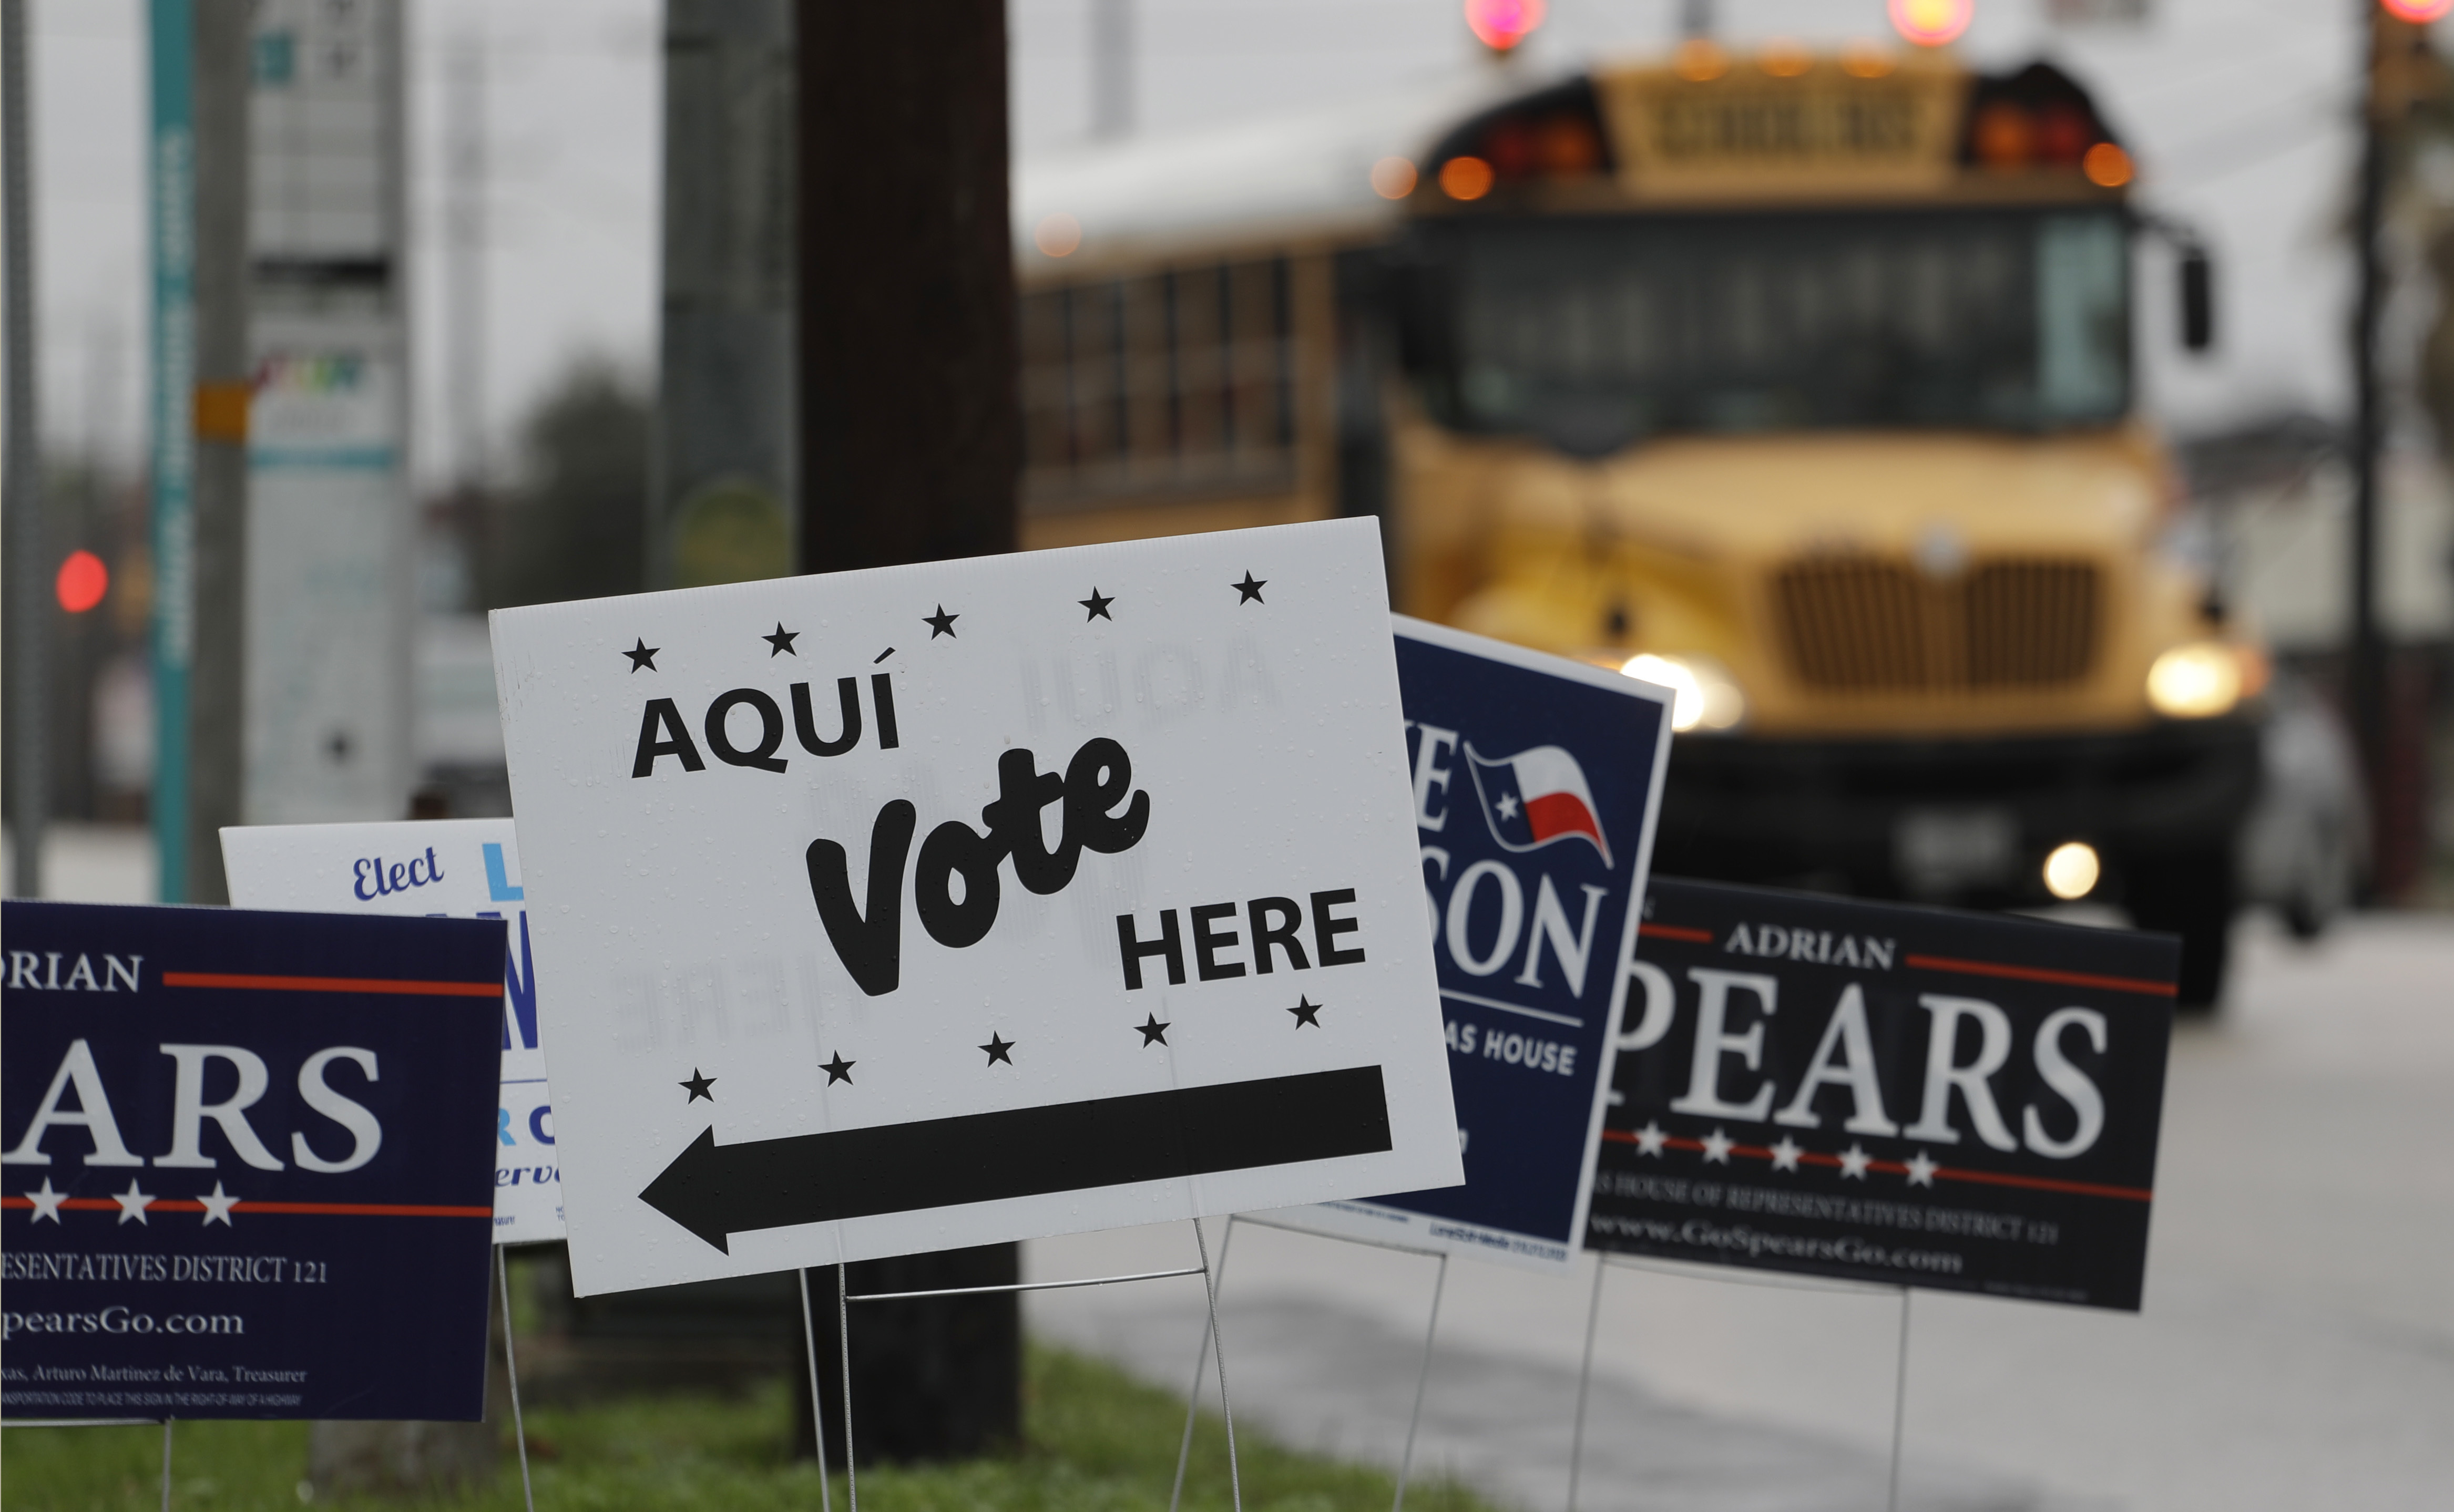 Signs mark a polling site as early voting begins, Tuesday, Feb. 20, 2018, in San Antonio. Early voting in Texas runs though March 2, 2018. (AP Photo/Eric Gay)